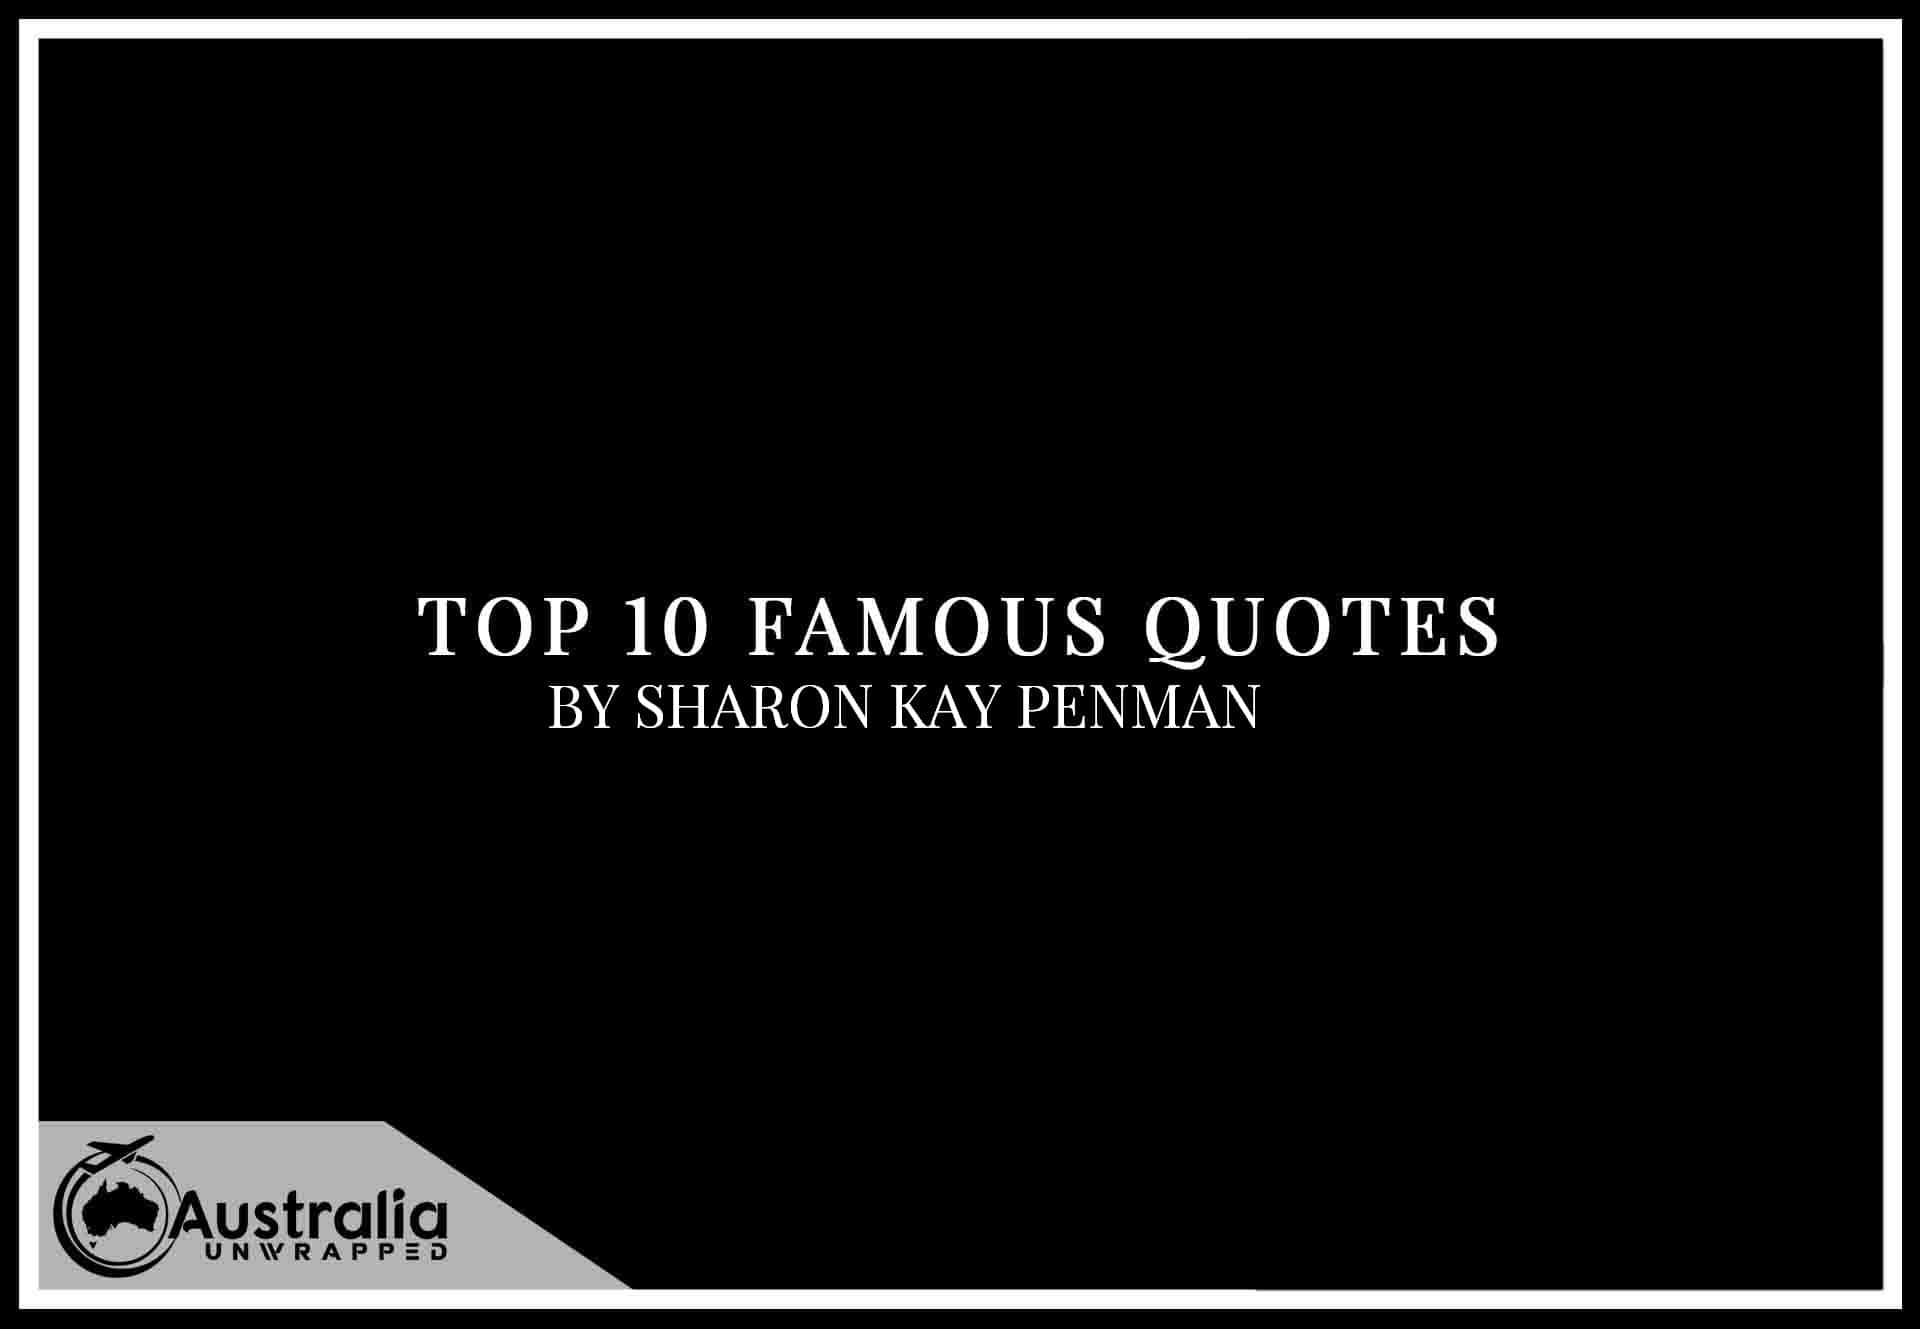 Top 10 Famous Quotes by Author Sharon Kay Penman